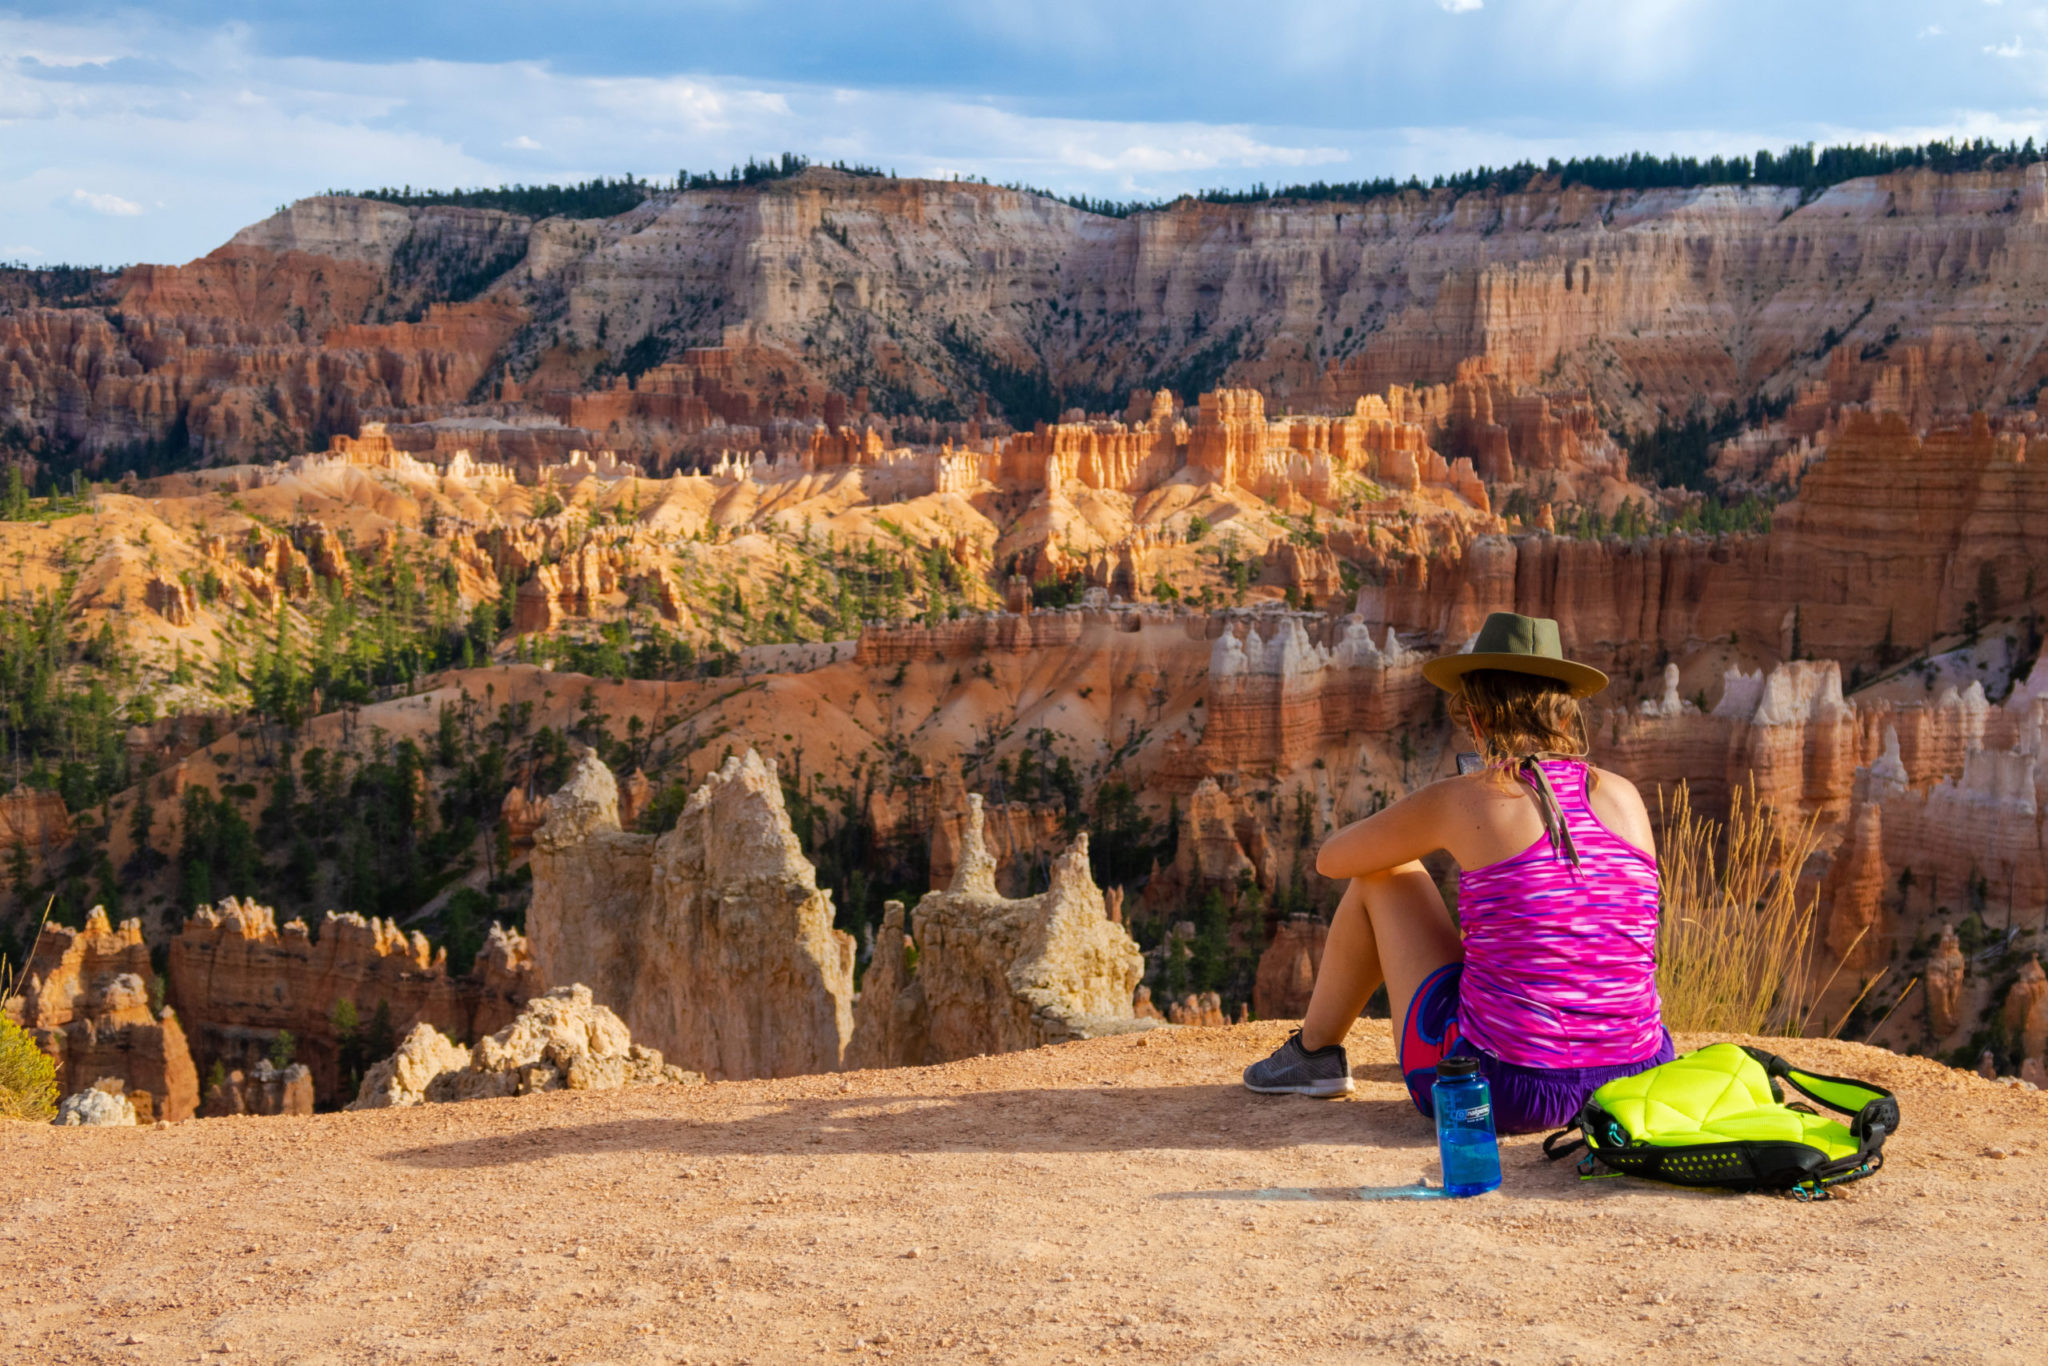 7 Day Southwest US National Parks Tour with Hotel: Visit Monument Valley!